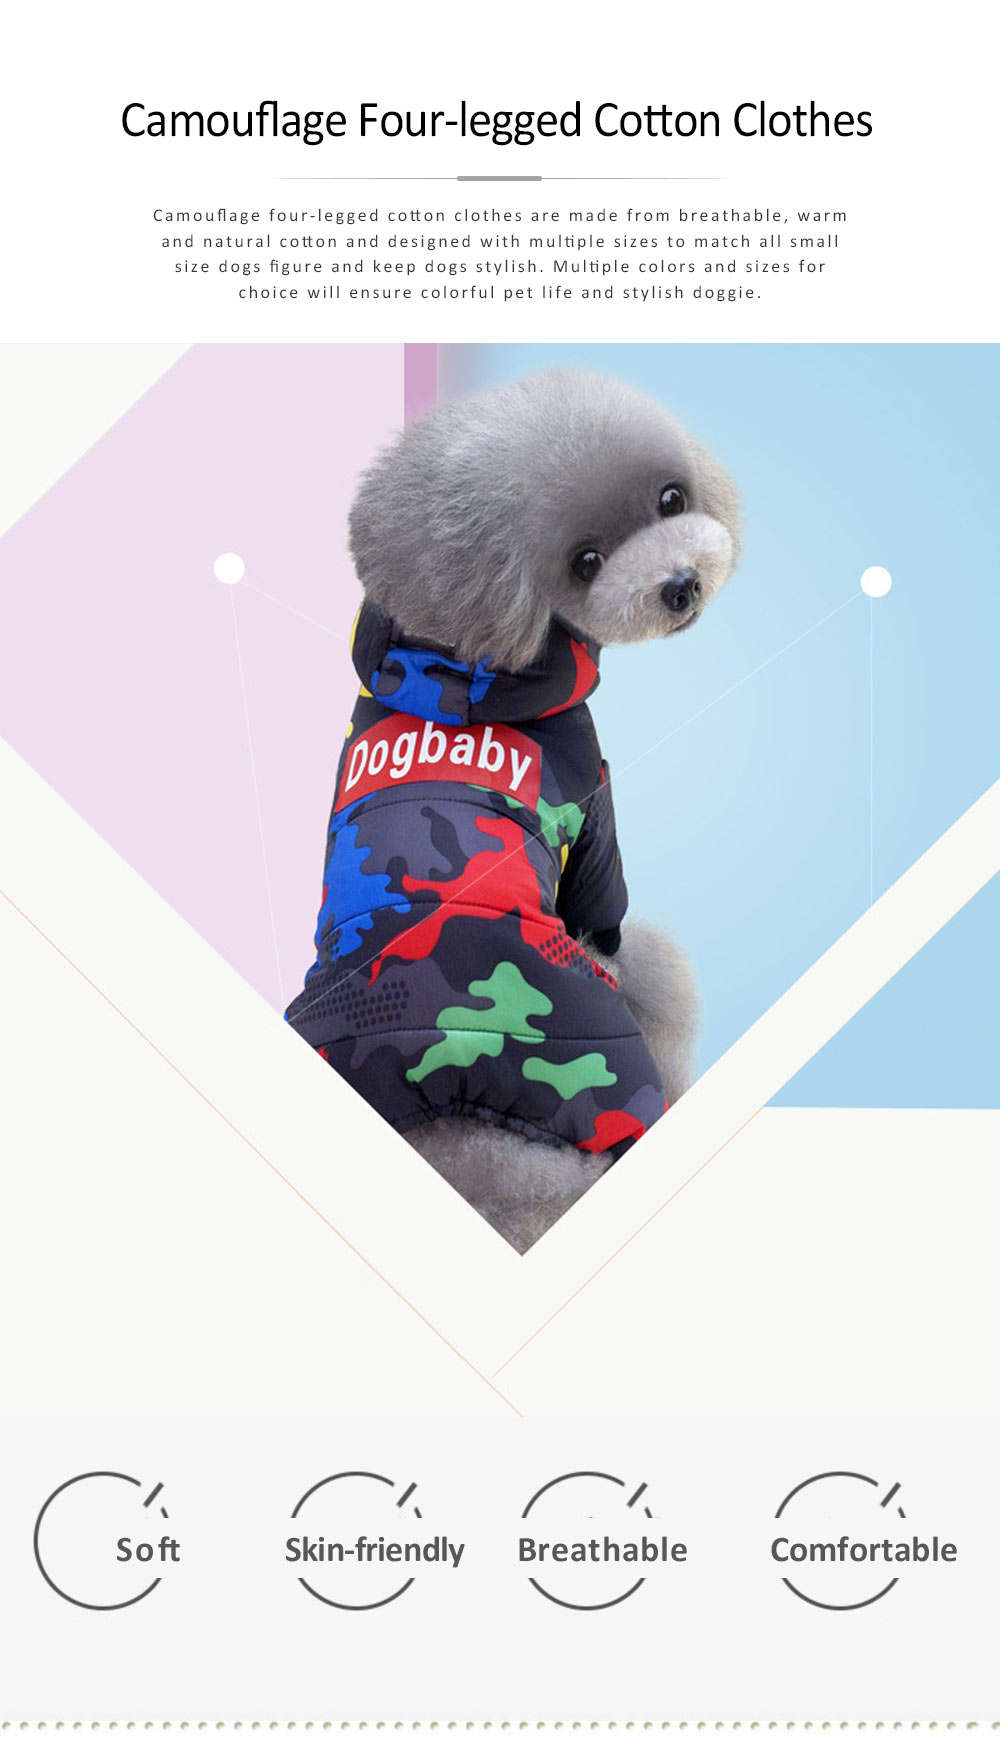 Camouflage Hoodie Four-legged New-style Cotton Clothes for Small Size Dogs Pet Clothes in Autumn and Winter Dog Clothes 0